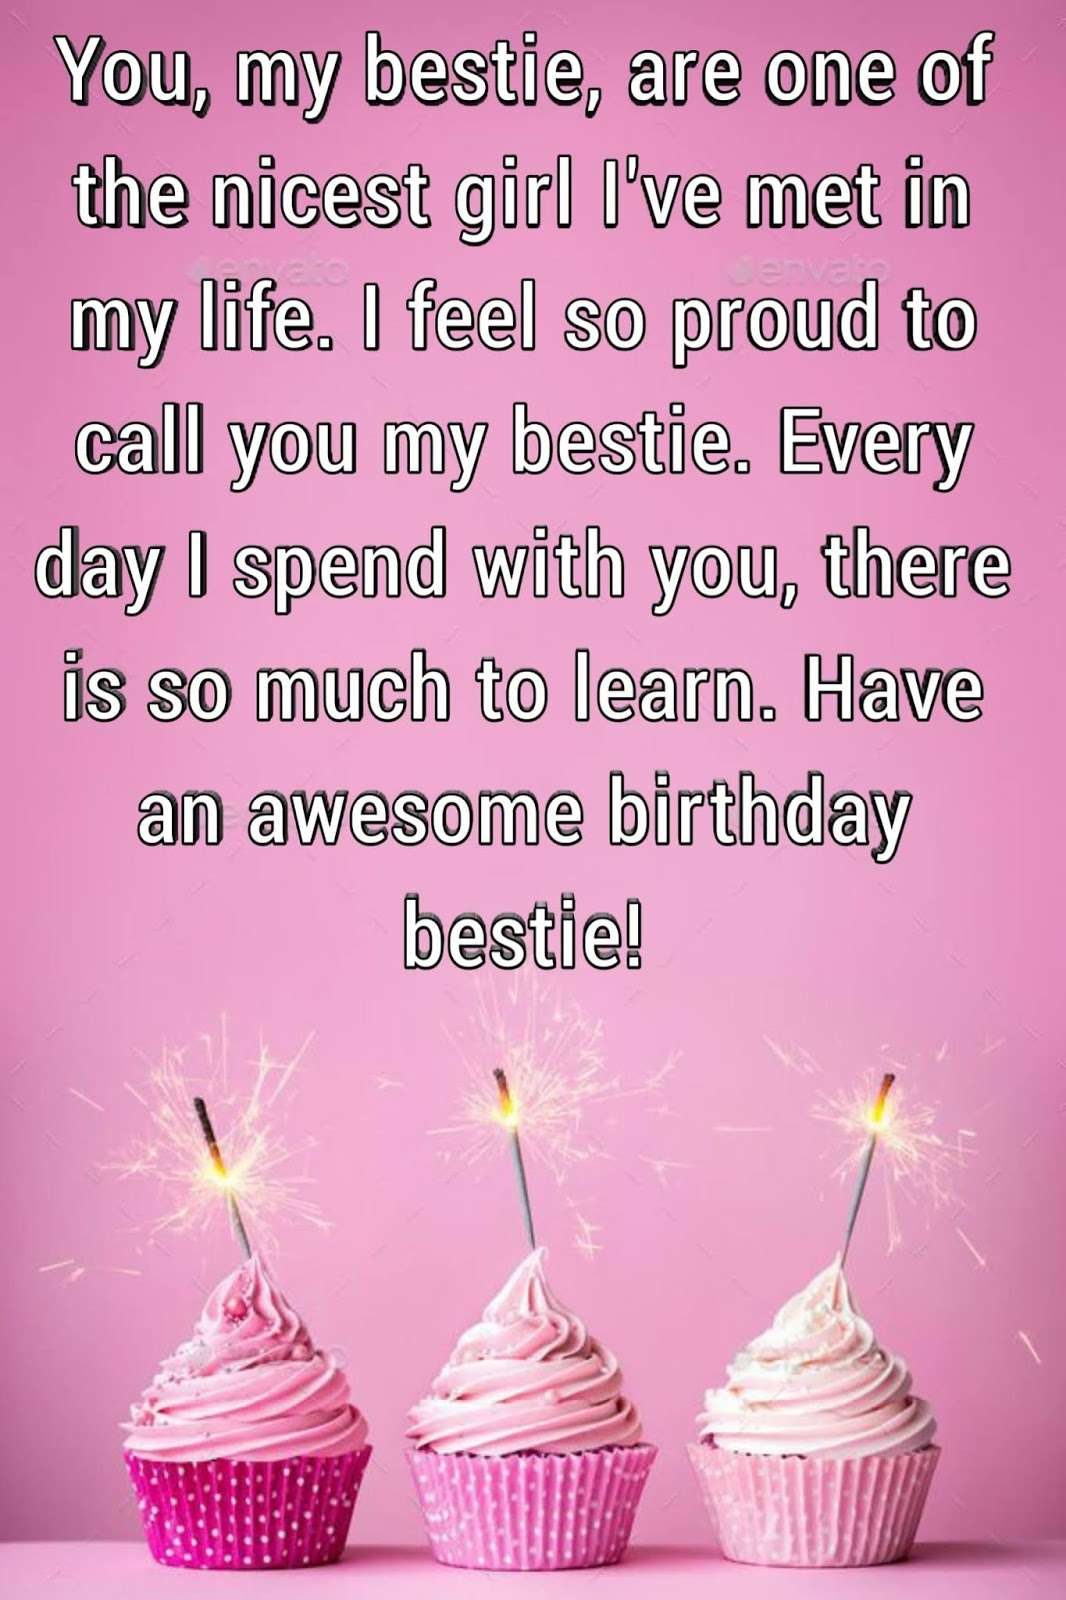 60 Beautiful Bday Wishes For Female Best Friend Good Readers